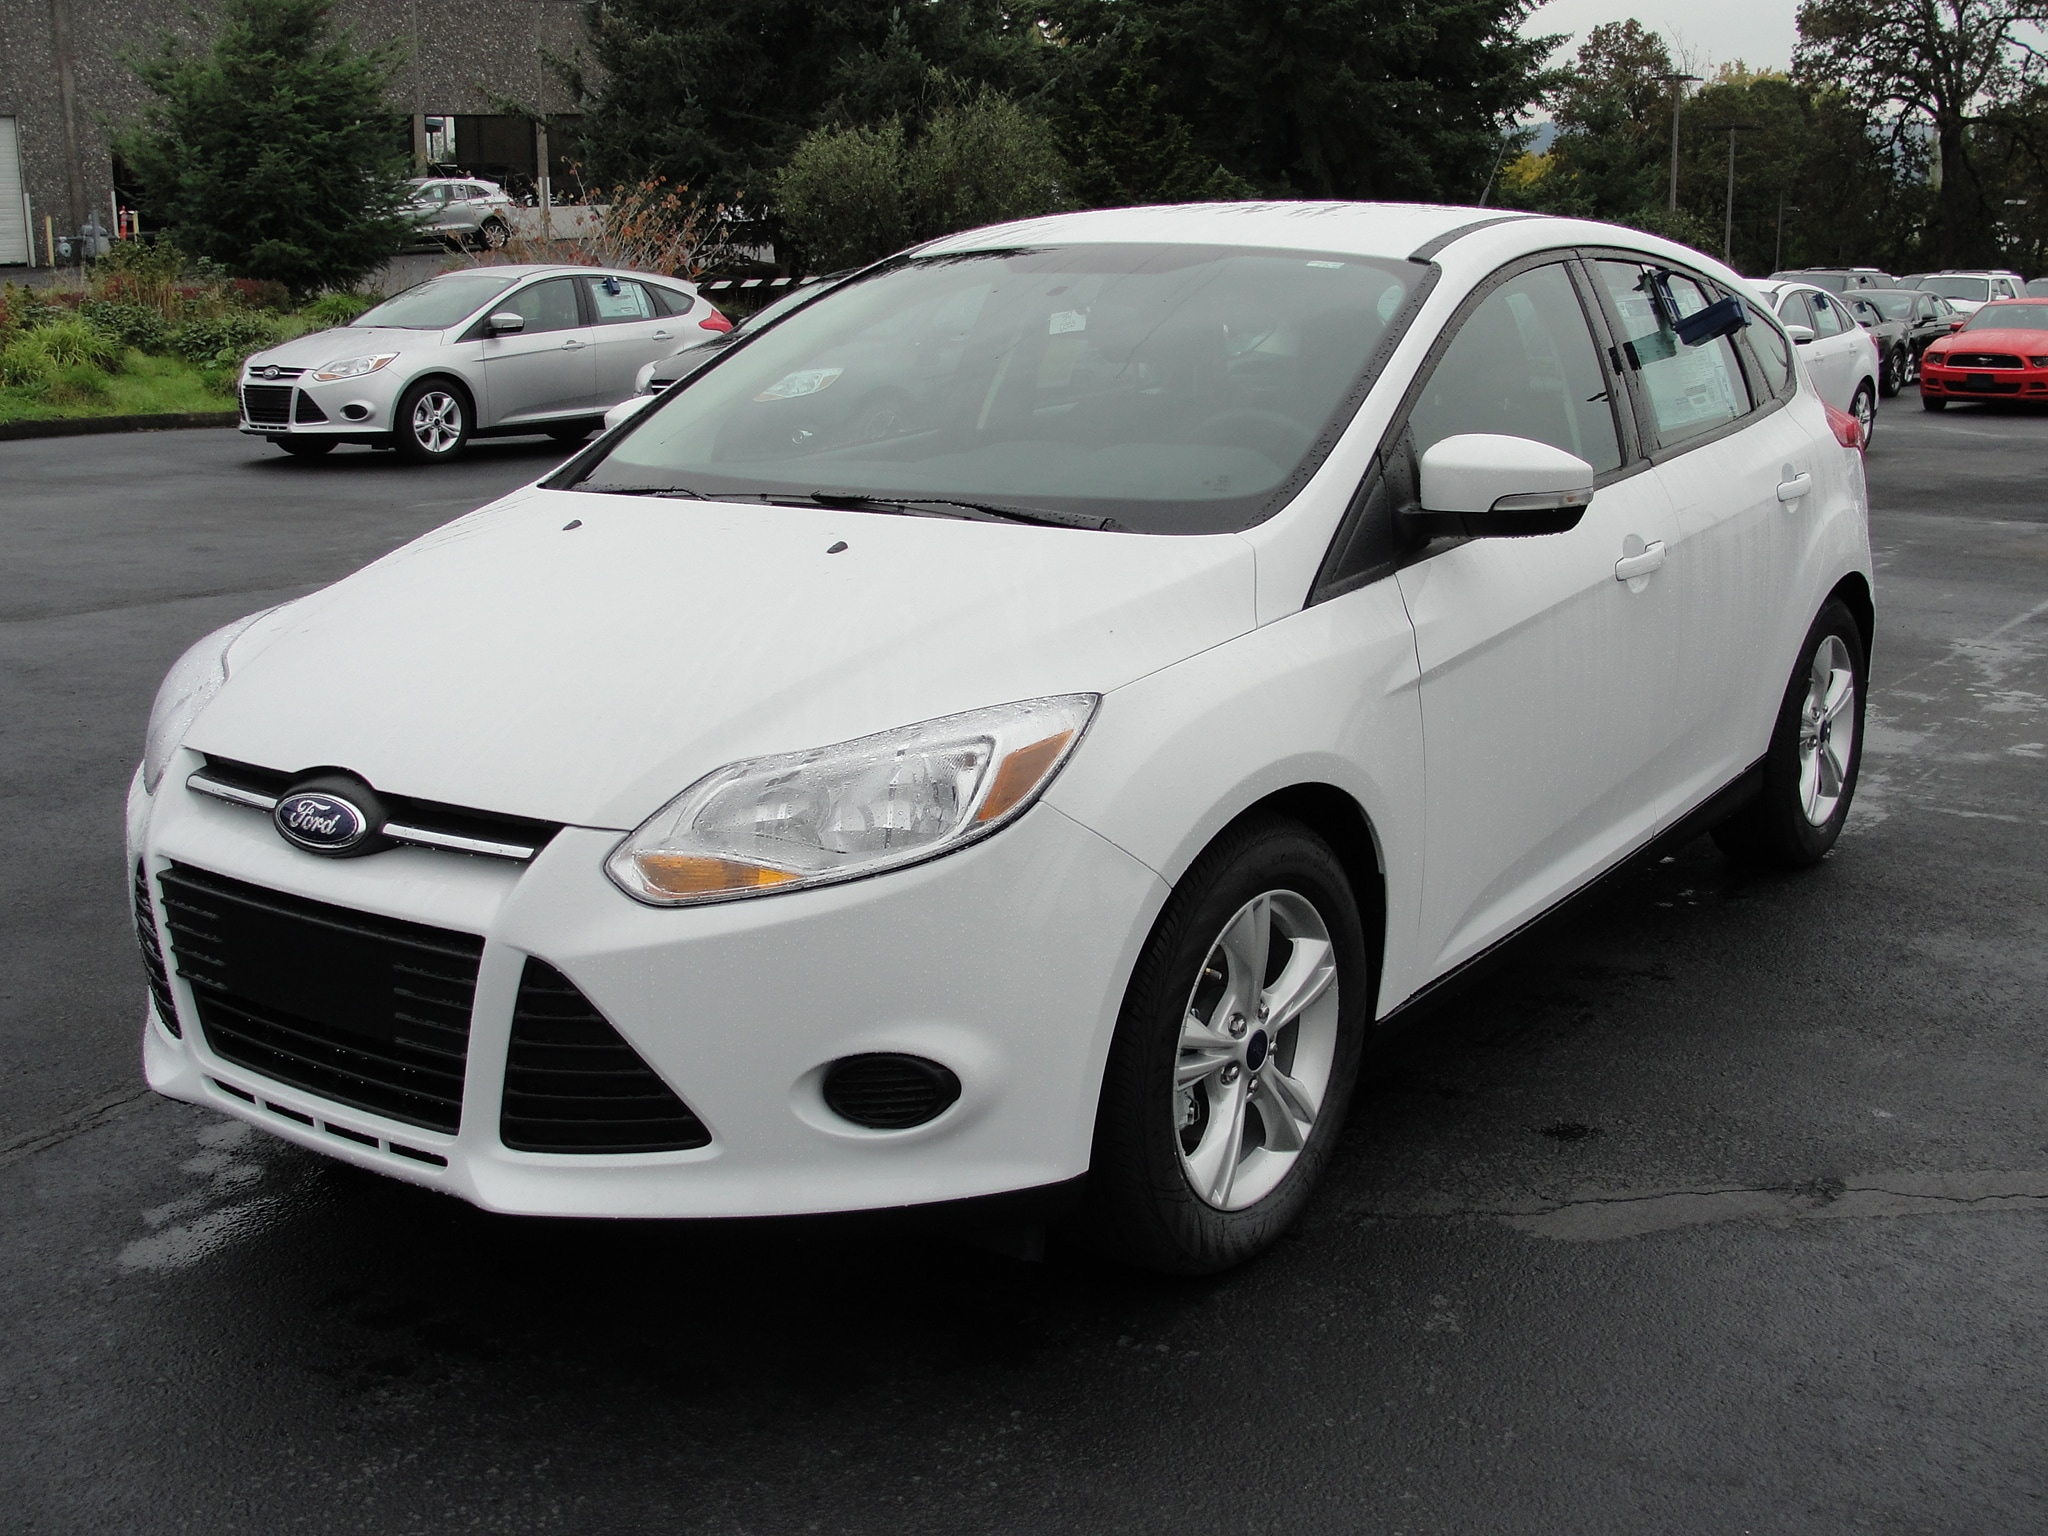 2014 Ford Focus SE Sensibility and practicality define the 2014 Ford Focus Demonstrating that econ